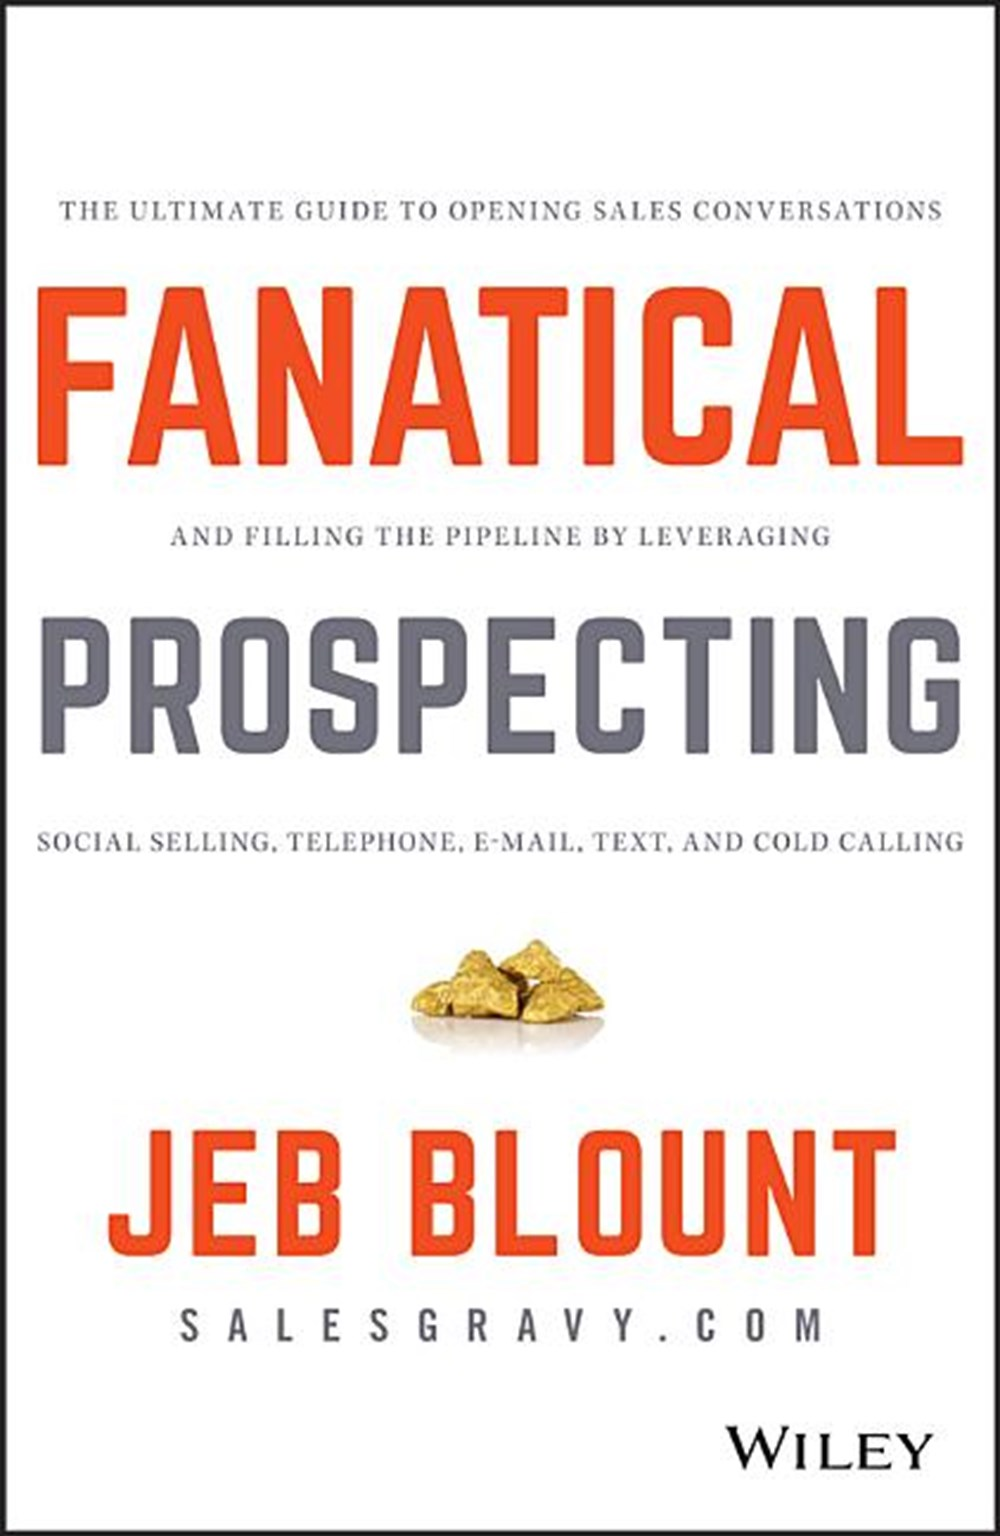 Fanatical Prospecting The Ultimate Guide to Opening Sales Conversations and Filling the Pipeline by